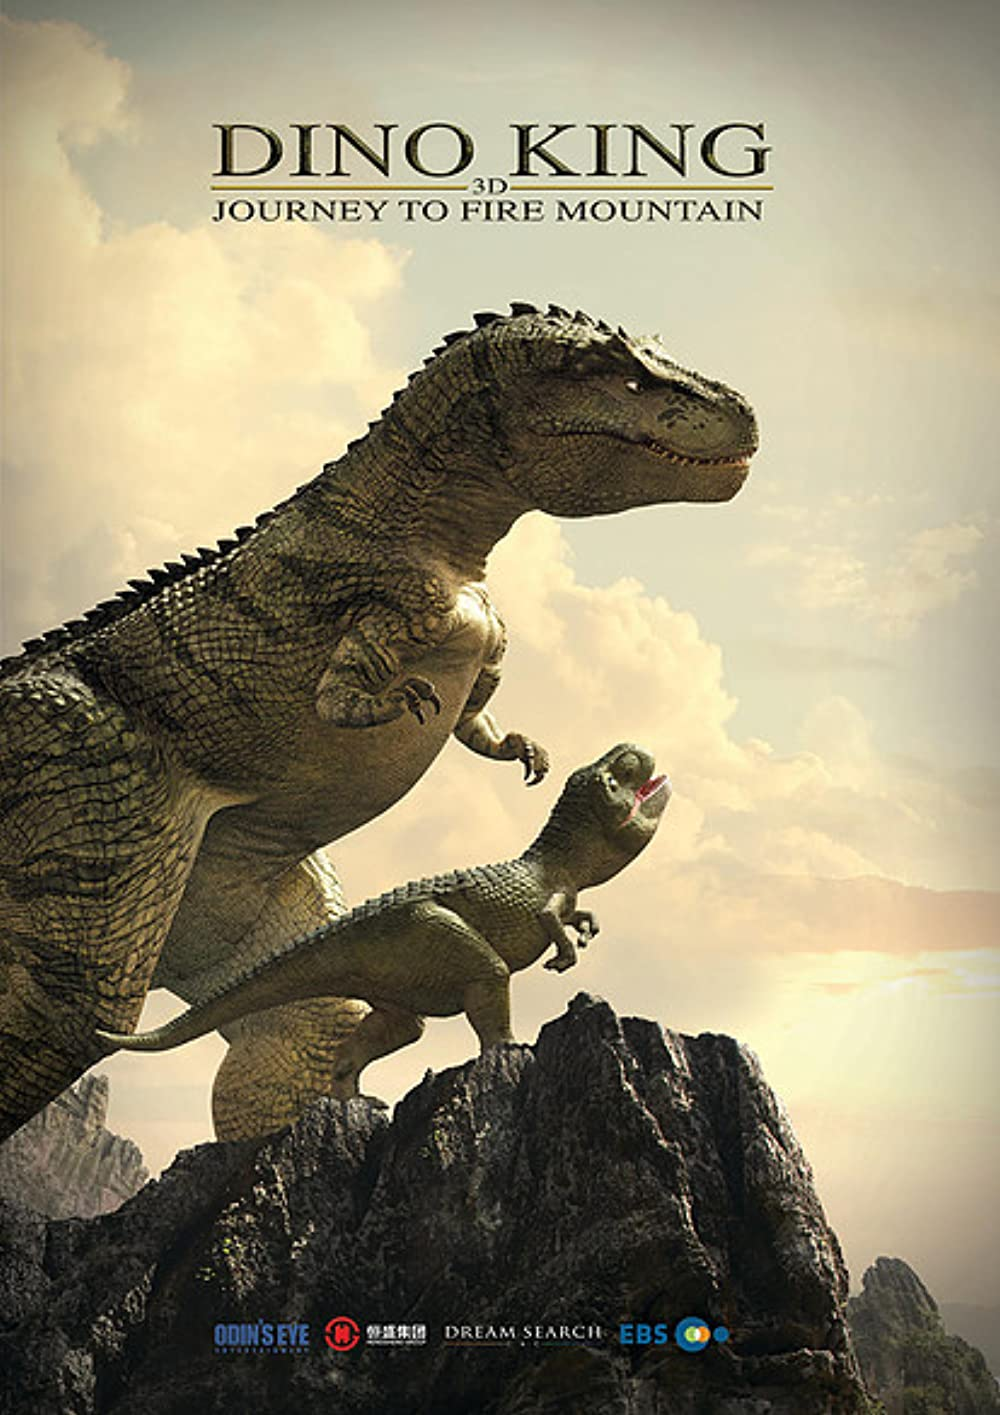 Dino King 3D: Journey to Fire Mountain 2019 Hindi Dubbed 300MB AMZN HDRip ESubs Download